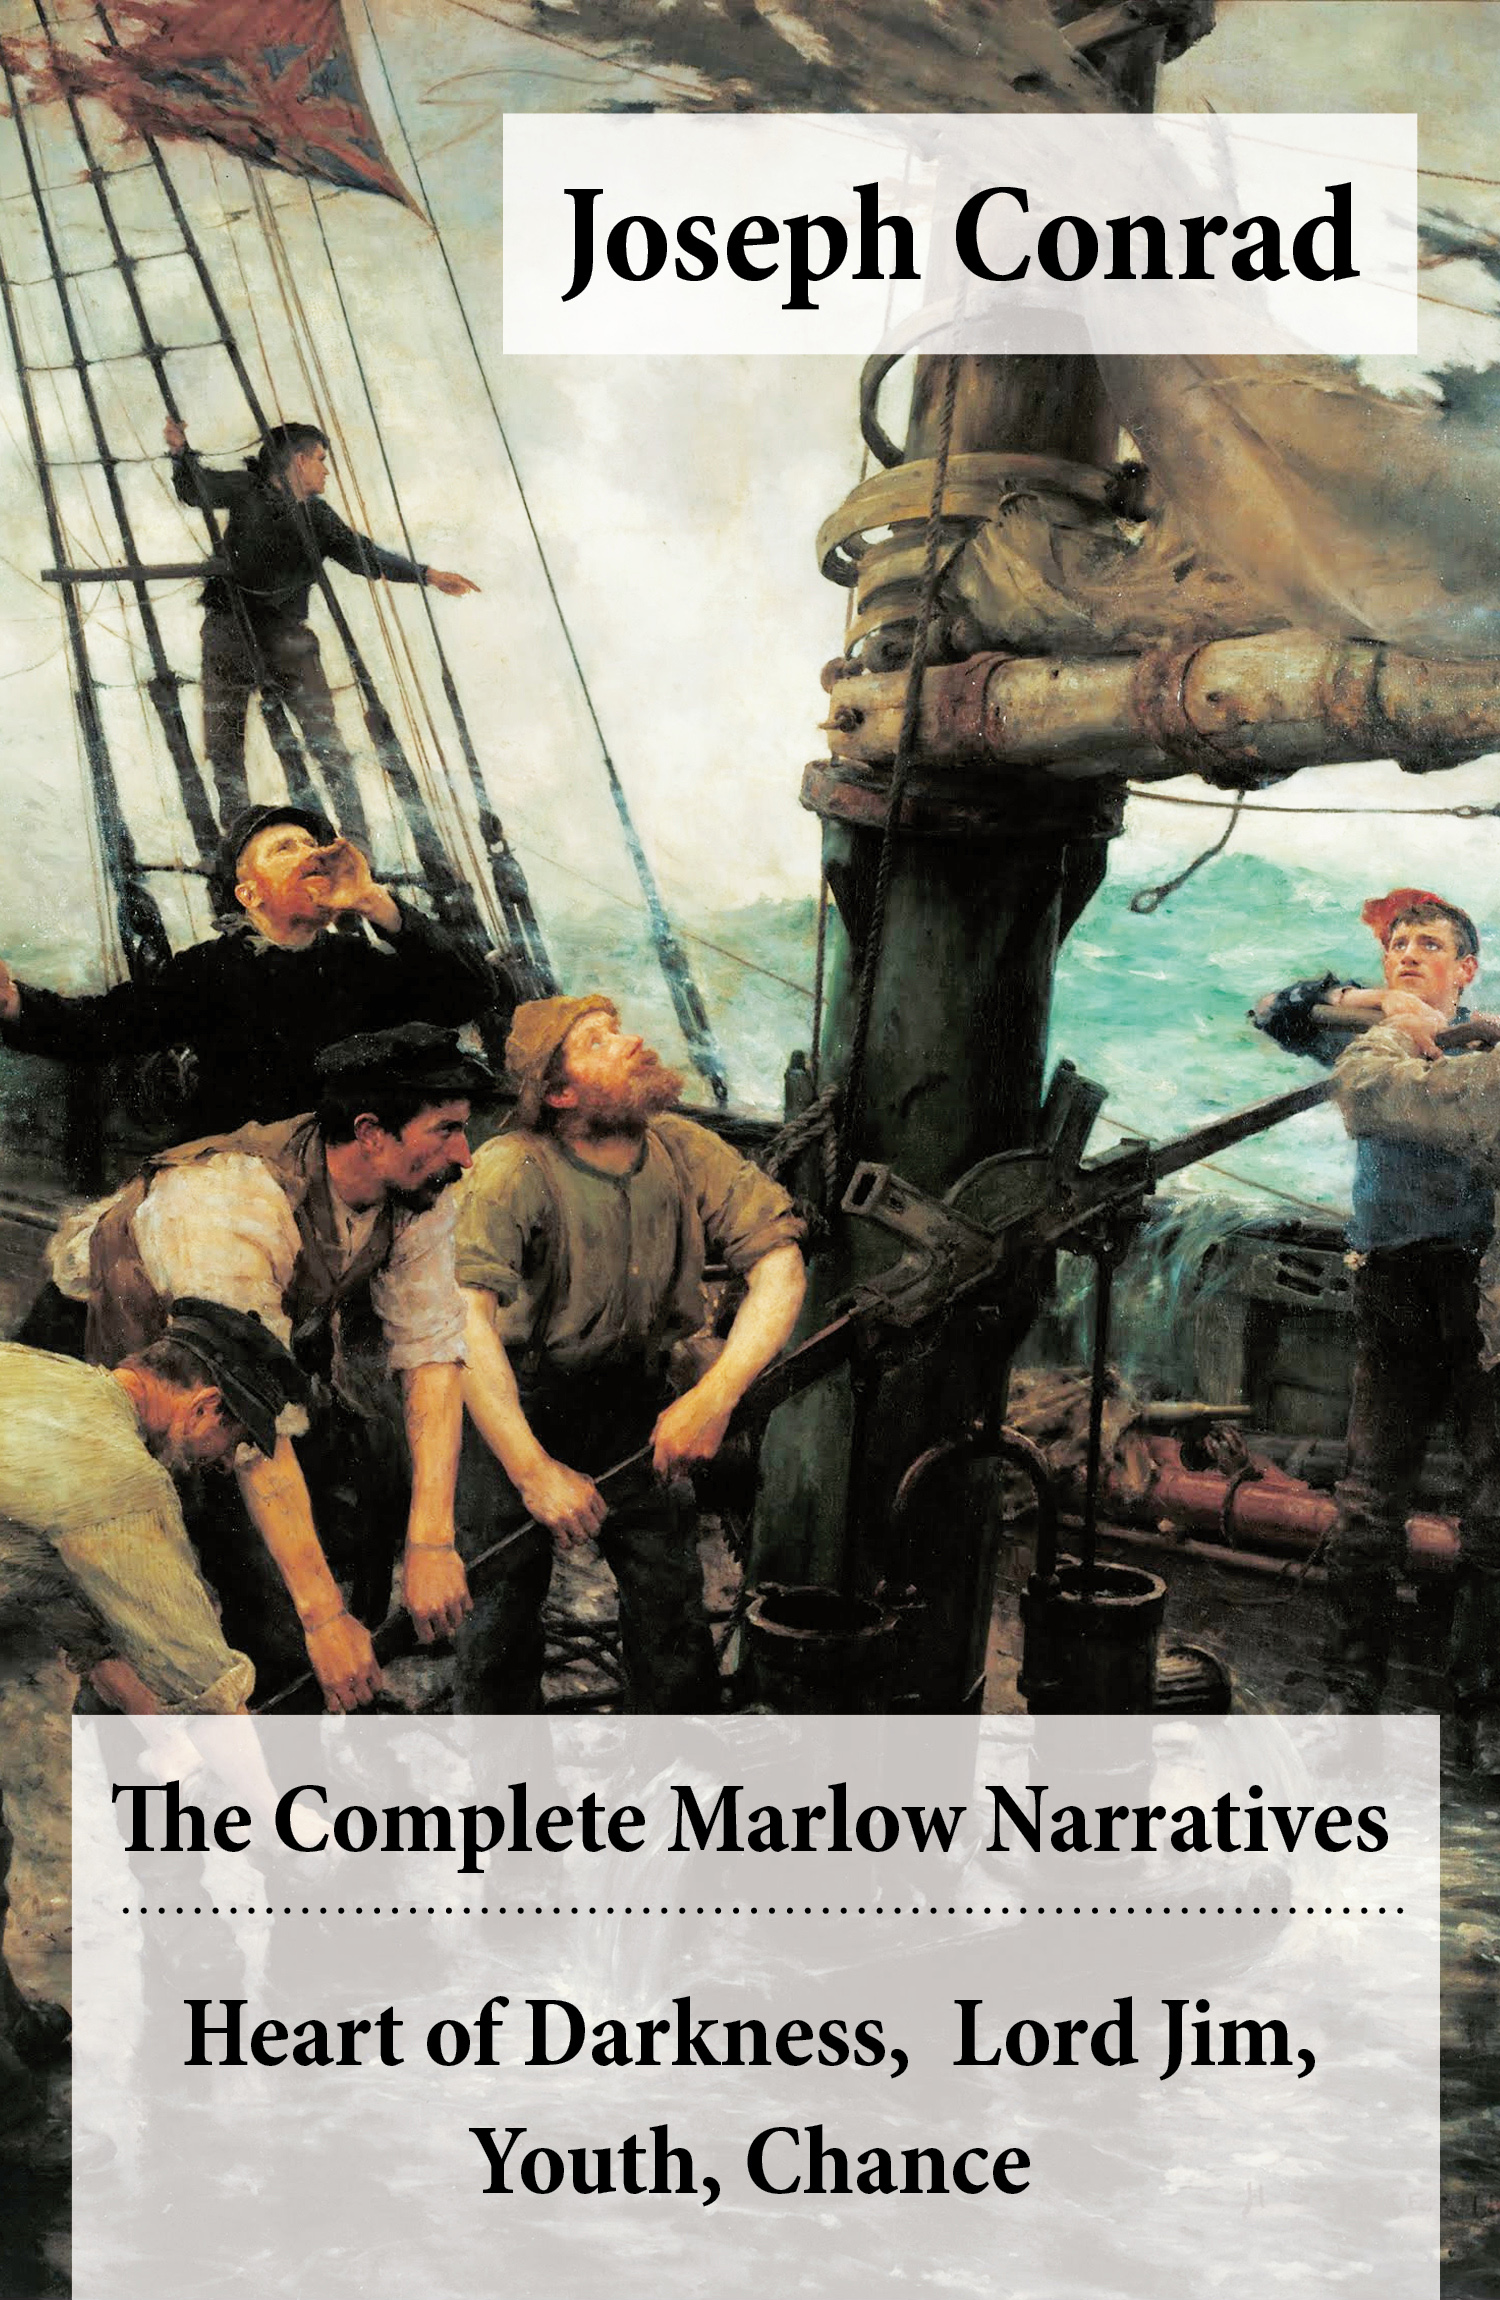 marlows observation and contact with the natives in heart of darkness by joseph conrad Through his journey, marlow develops an intense interest in investigating kurtz, an ivory-procurement agent, and marlow is shocked upon seeing what the european traders have done to the natives joseph conrad's exploration of the darkness potentially inherent in all human hearts inspired the 1979 film, apocalypse now, although the setting was moved to vietnam.